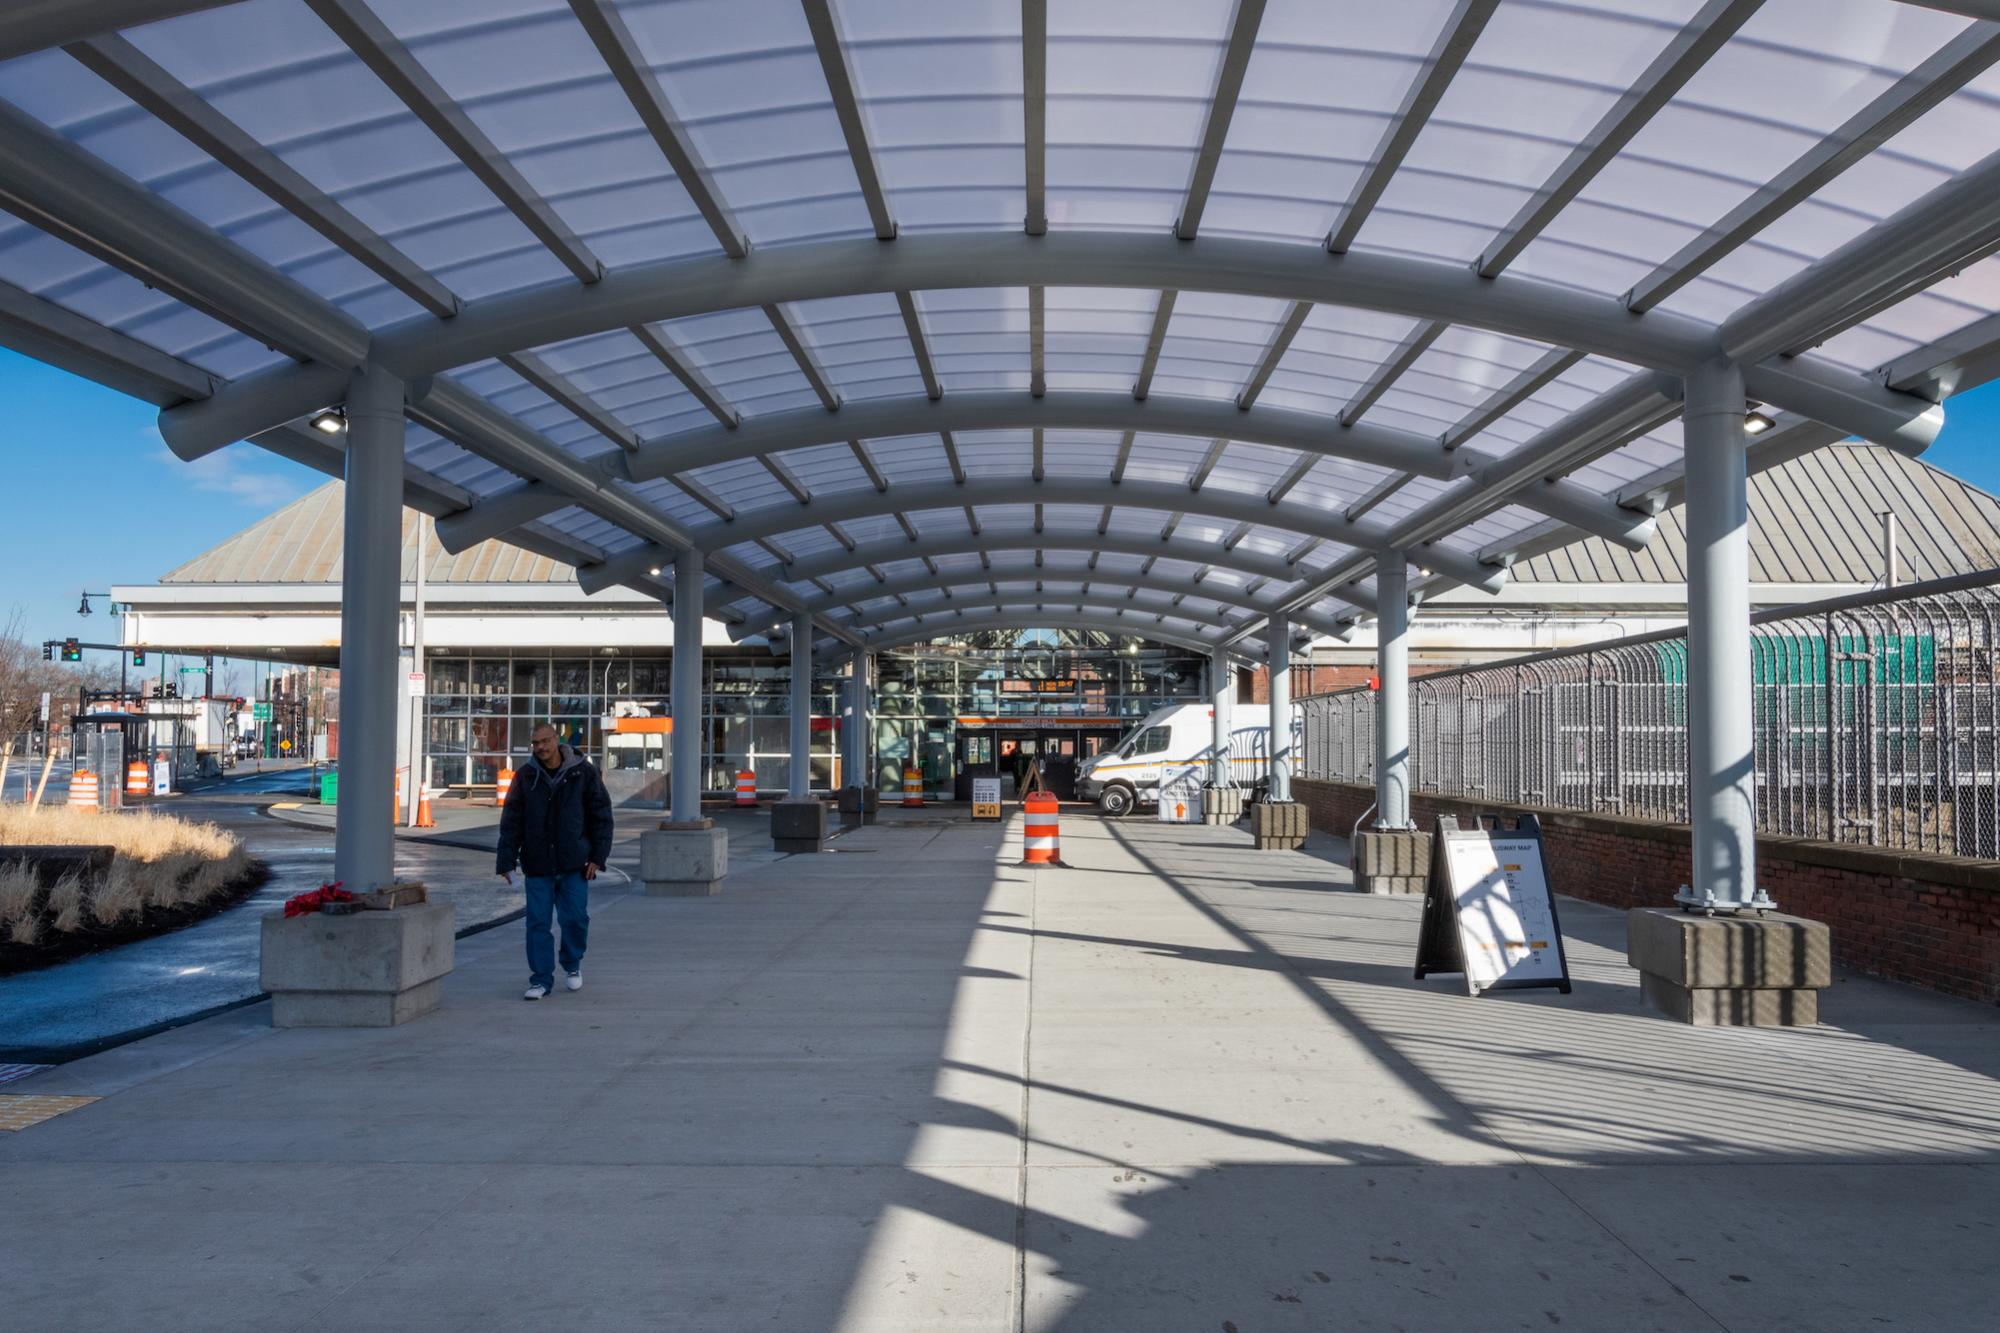 Covered walkway to the Forest Hills entrance (January 4, 2019)